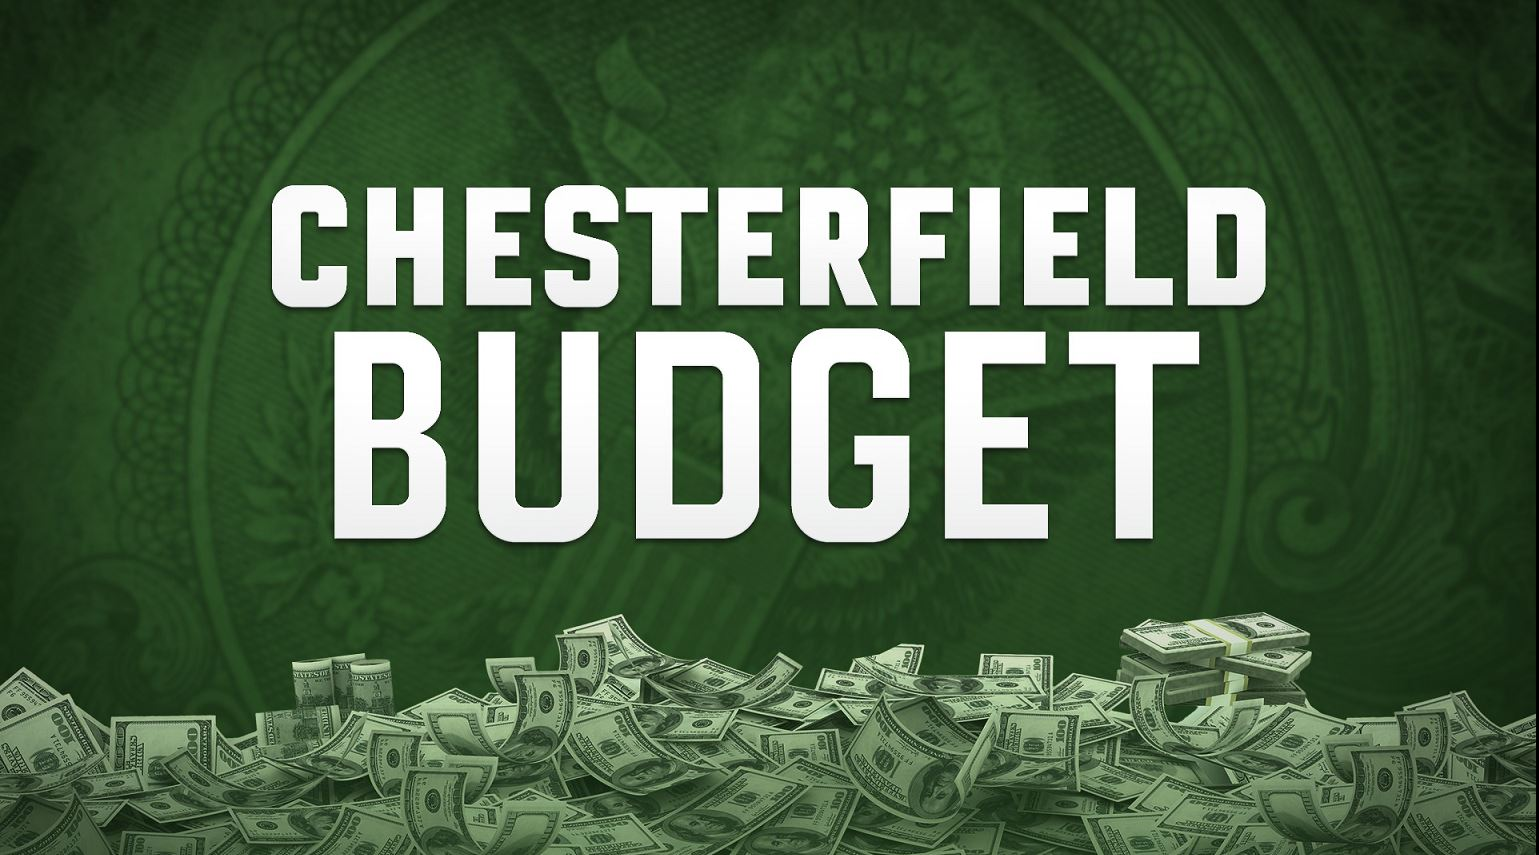 Chesterfield County proposes new budget